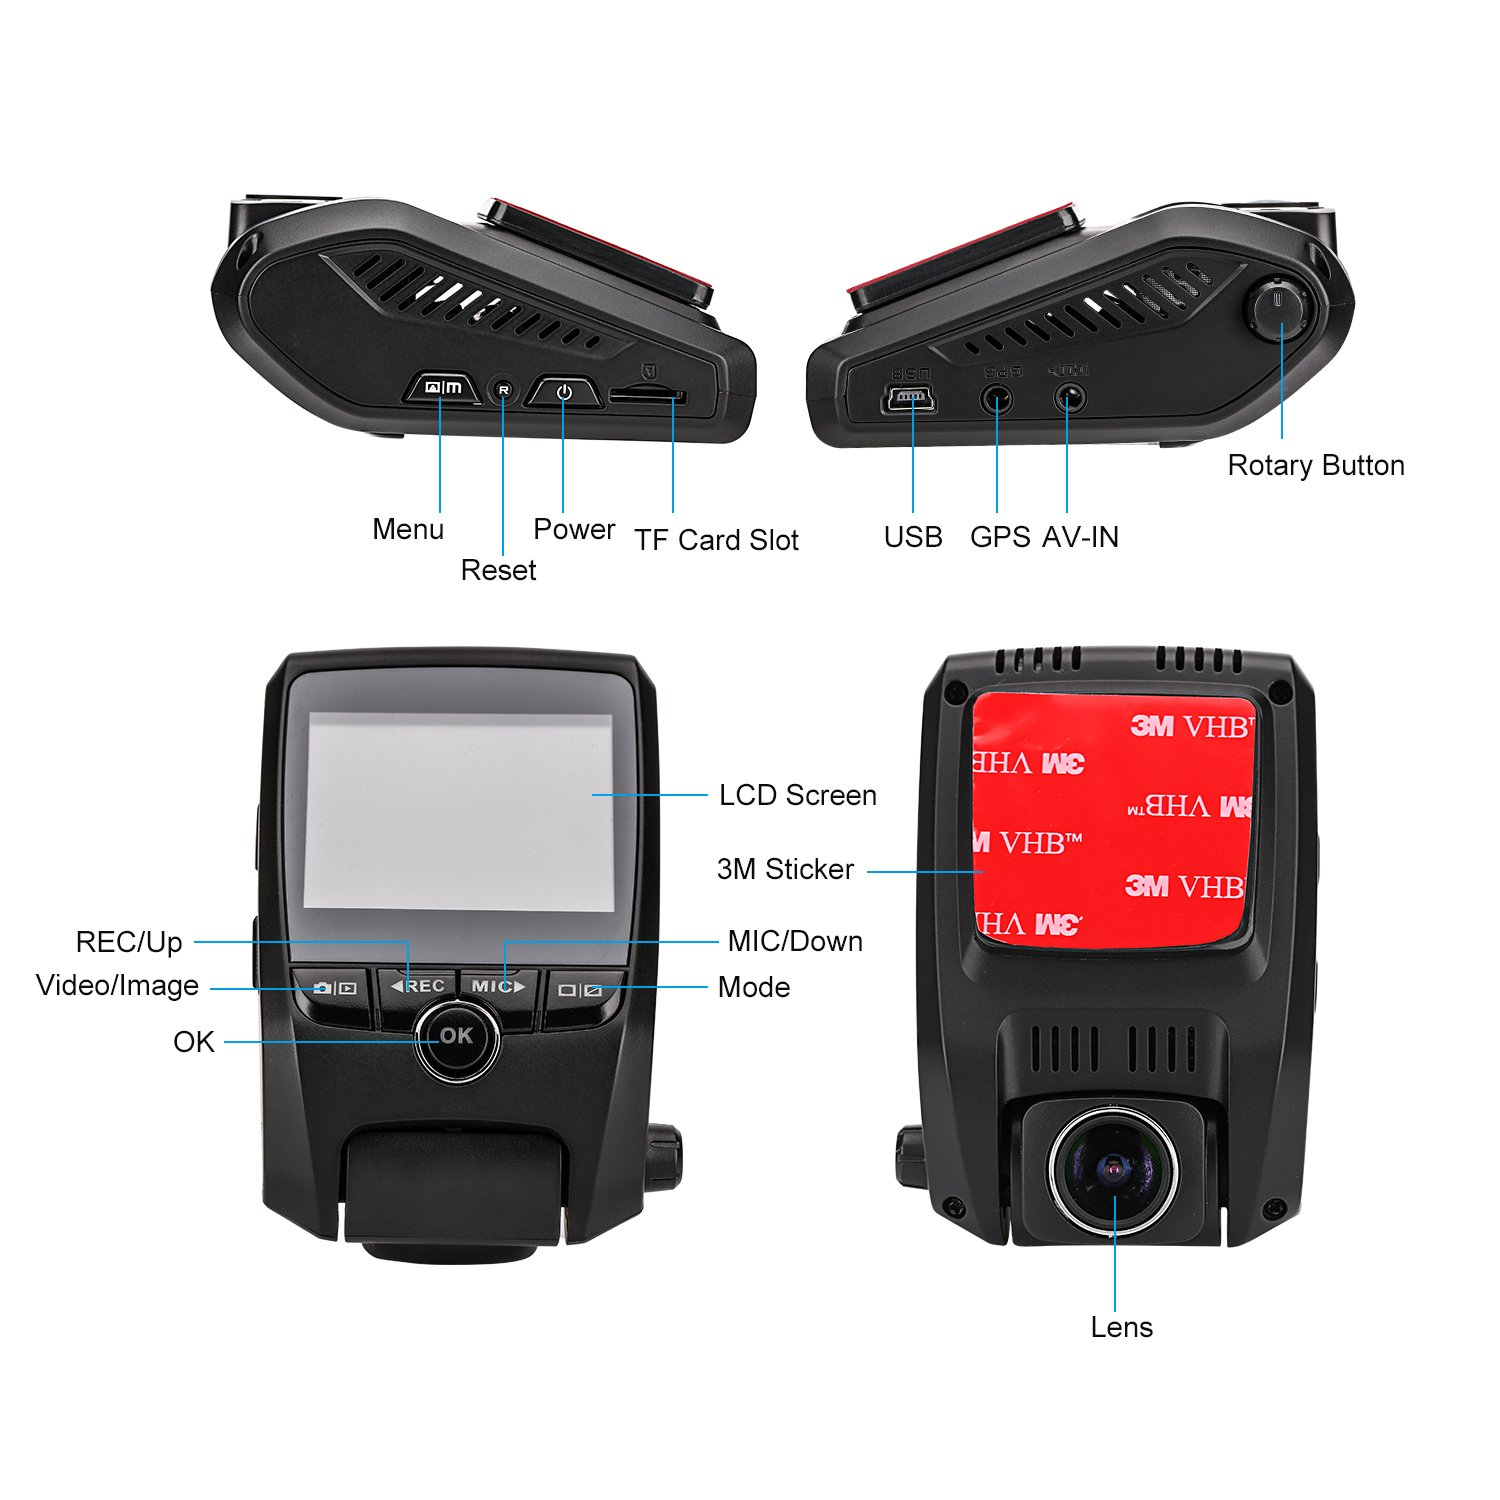 ZXS-X2-Car-Dash-Cam-231-LCD-FHD-1080P-170-Degree-Wide-Angle-Lens-Super-Capacitor-Recorder-with-G-SensorMotion-DetectionLoop-Recording-with-32GB-SD-Card